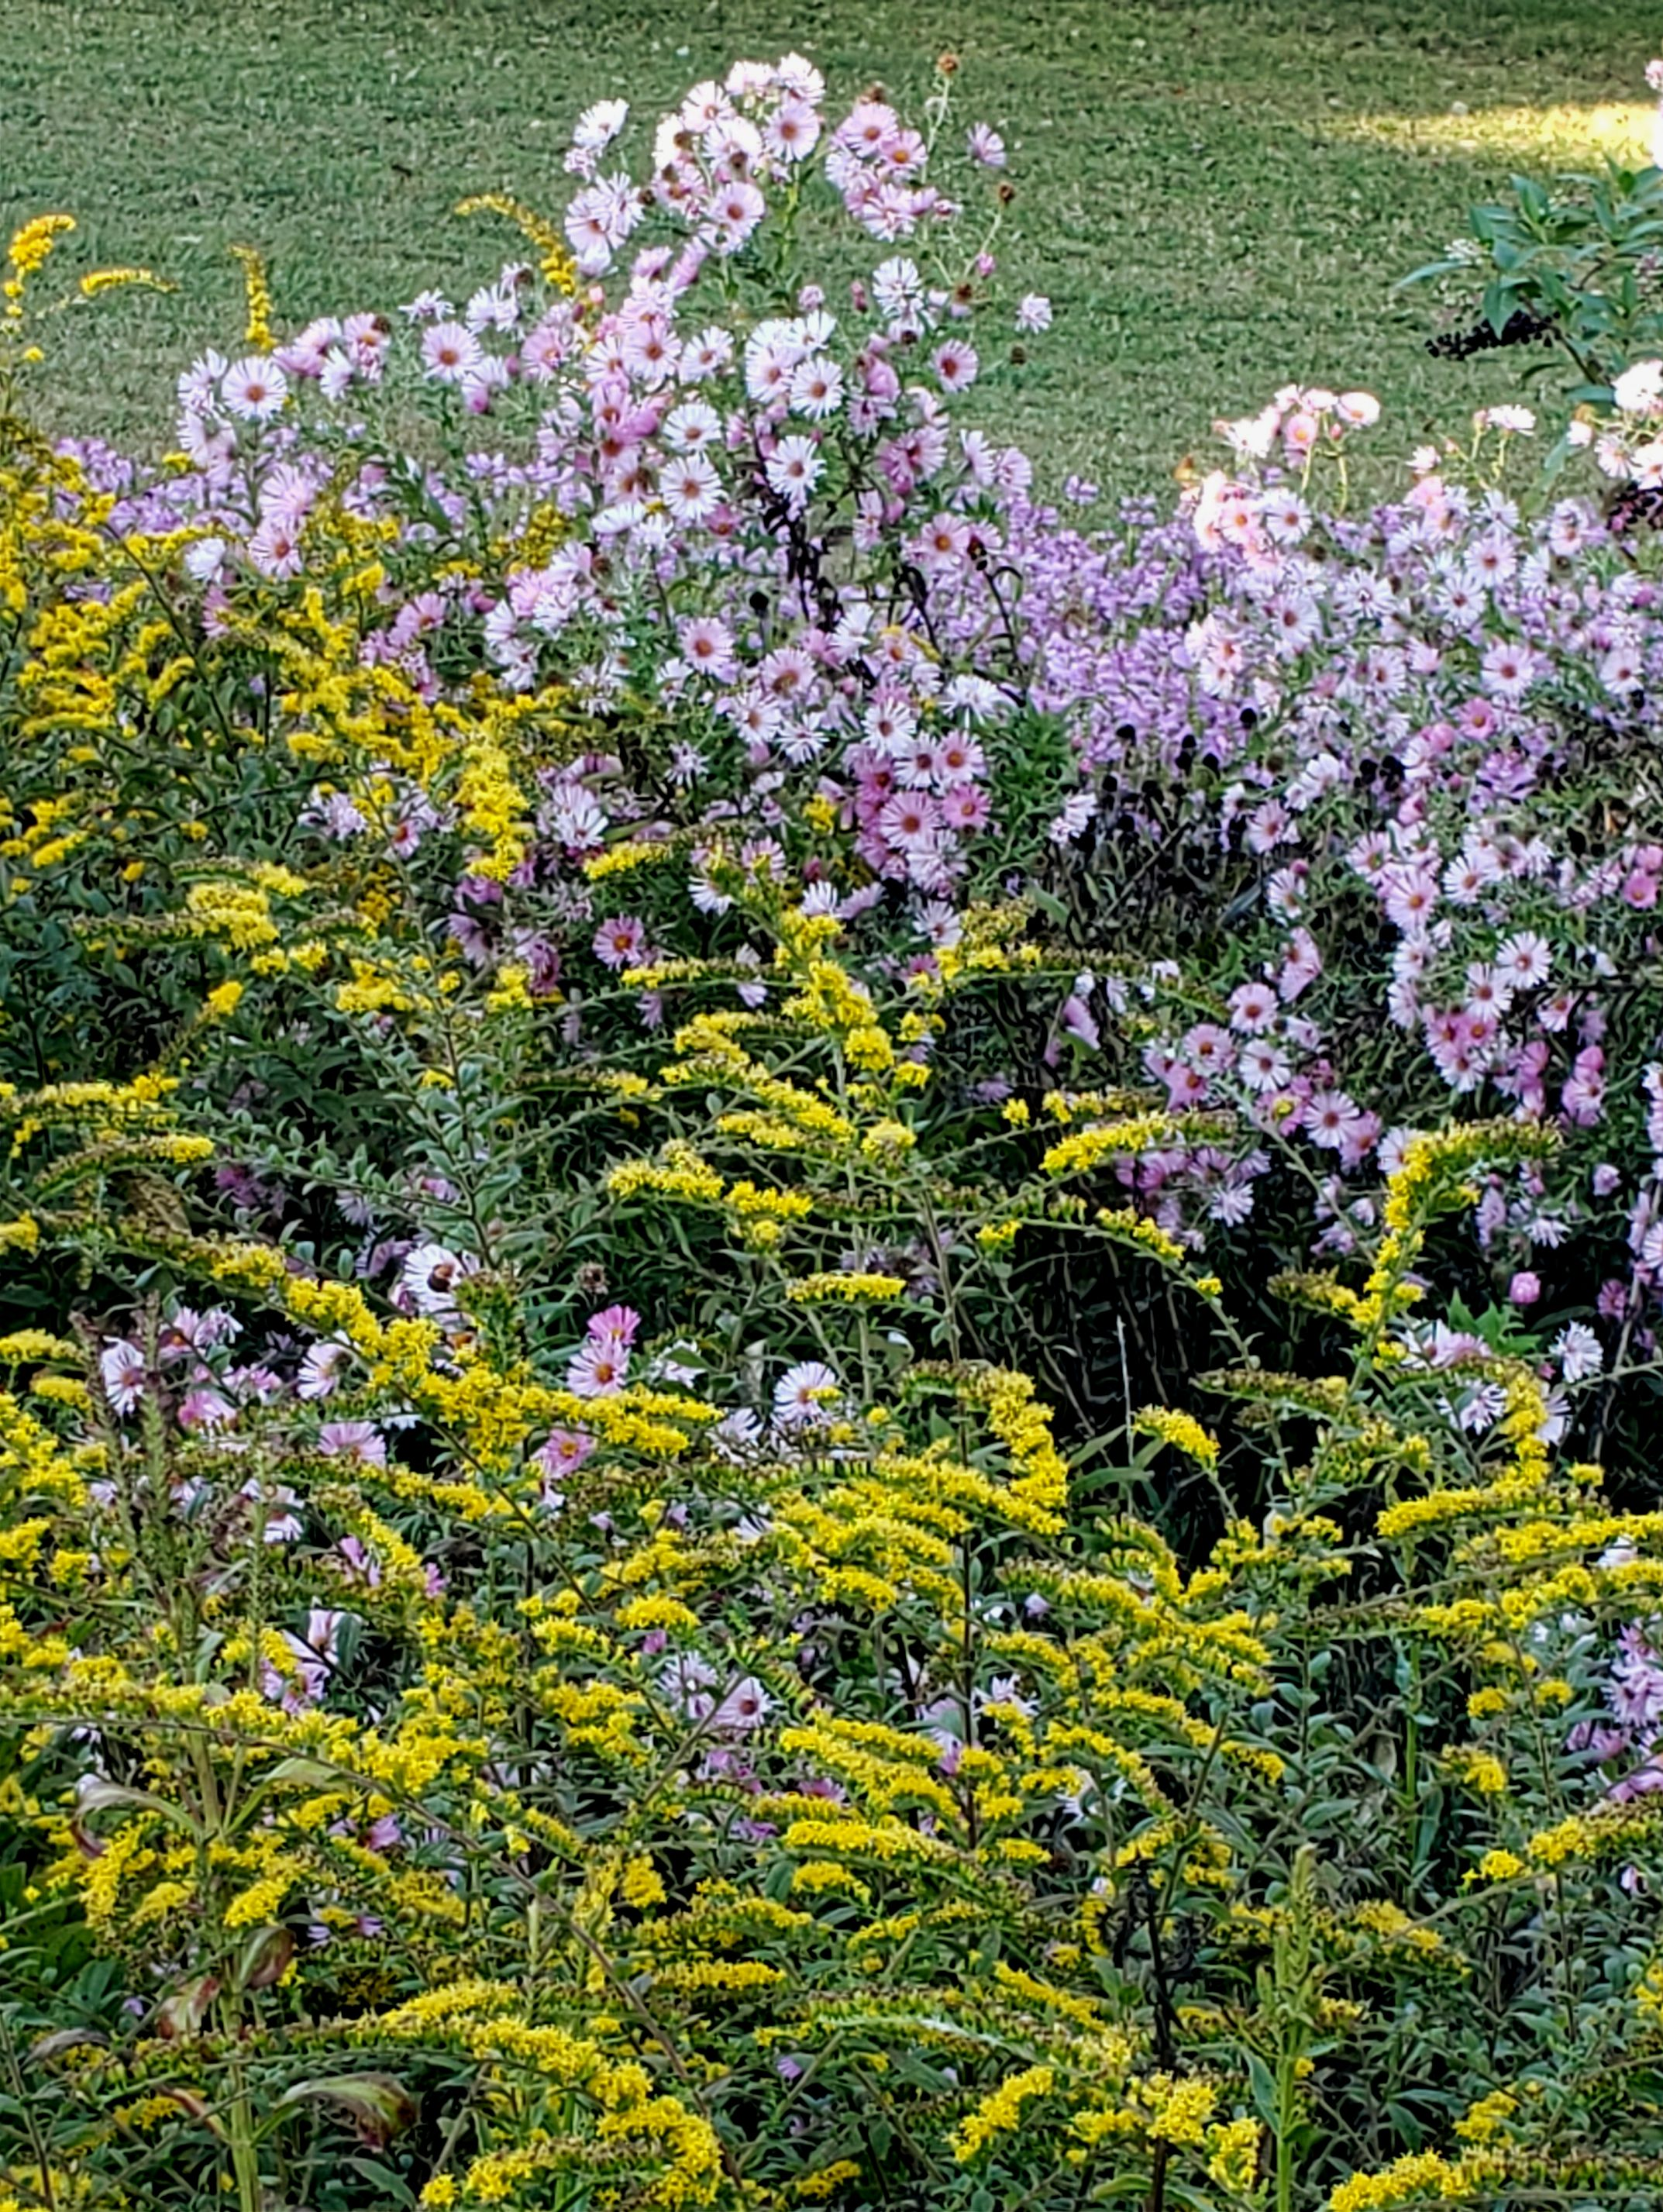 Native perennial asters and solidago bloom in the fall garden